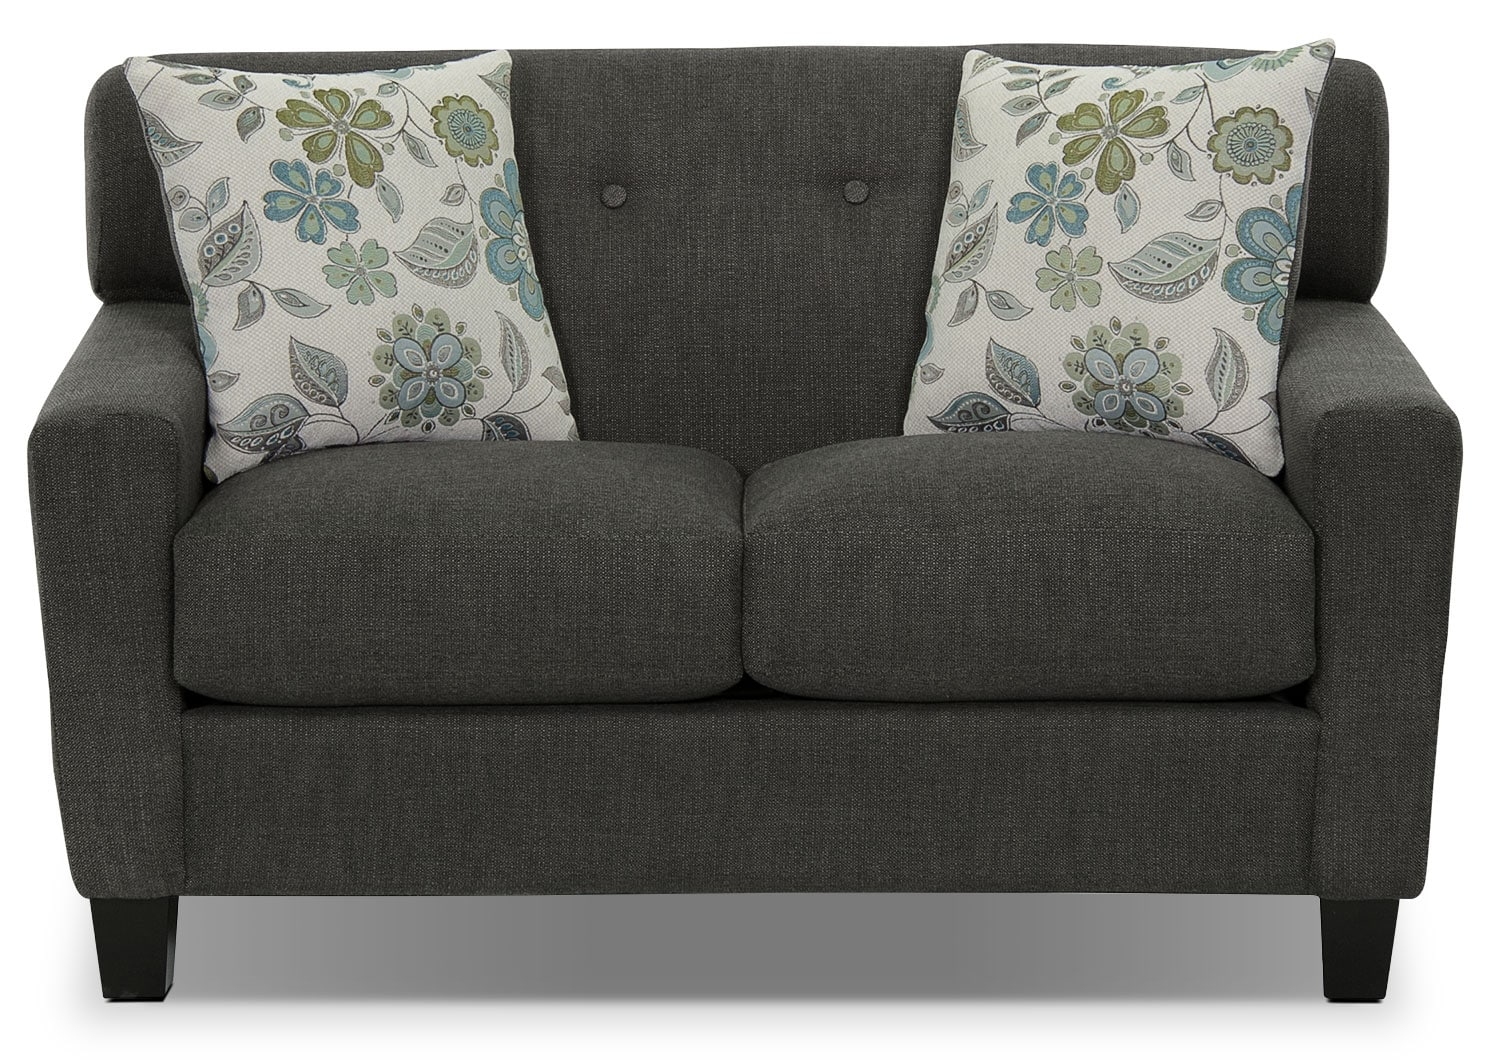 Aubrey Linen-Look Fabric Loveseat - Charcoal